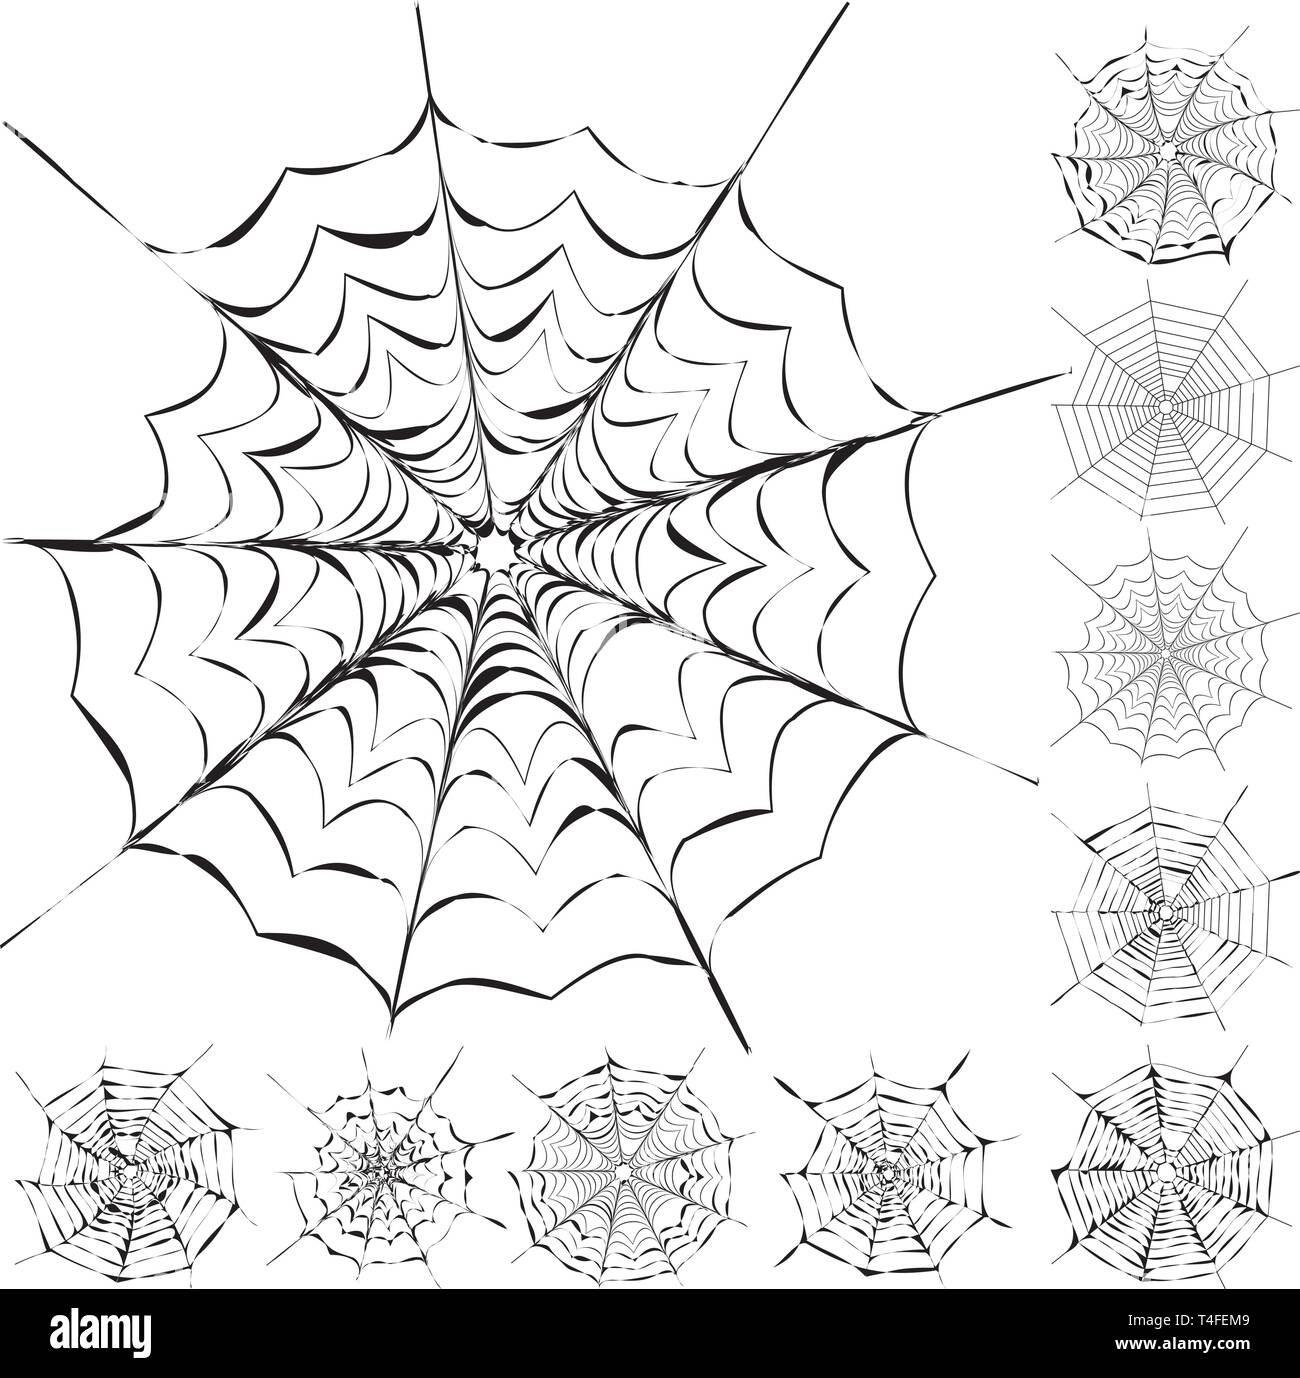 Set of 11 different spiderwebs isolated on white, easy to print, vector illustration - Stock Vector